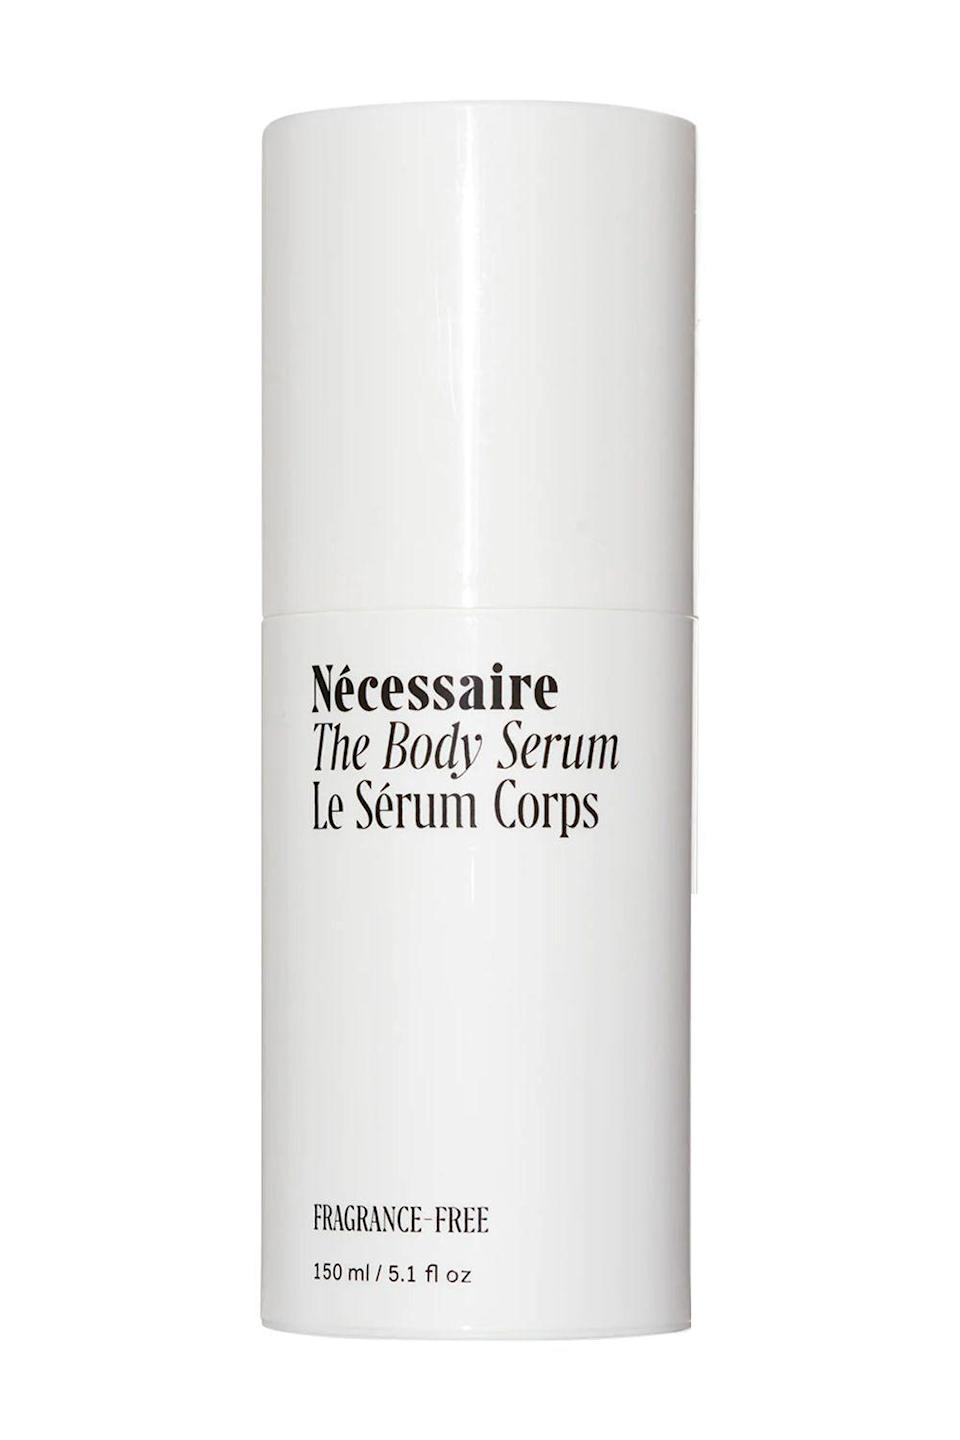 """<p><strong>Nécessaire</strong></p><p>sephora.com</p><p><strong>$45.00</strong></p><p><a href=""""https://go.redirectingat.com?id=74968X1596630&url=https%3A%2F%2Fwww.sephora.com%2Fproduct%2Fnecessaire-the-body-serum-P459729&sref=https%3A%2F%2Fwww.cosmopolitan.com%2Fstyle-beauty%2Fbeauty%2Fg33995669%2Fbest-body-serums%2F"""" rel=""""nofollow noopener"""" target=""""_blank"""" data-ylk=""""slk:Shop Now"""" class=""""link rapid-noclick-resp"""">Shop Now</a></p><p>This gentle body serum is a staple in my medicine cabinet. I rub a few pumps all over post shower, and let the hyaluronic acid and vitamin-infused gel formula hydrate and plump the hell out of my skin. P.S. This bb is fragrance-free and pH-balanced, making it <strong>a safe choice for anyone with <a href=""""https://www.cosmopolitan.com/style-beauty/beauty/a31347/beauty-products-sensitive-skin/"""" rel=""""nofollow noopener"""" target=""""_blank"""" data-ylk=""""slk:sensitive"""" class=""""link rapid-noclick-resp"""">sensitive</a> or easily irritated skin.</strong></p>"""